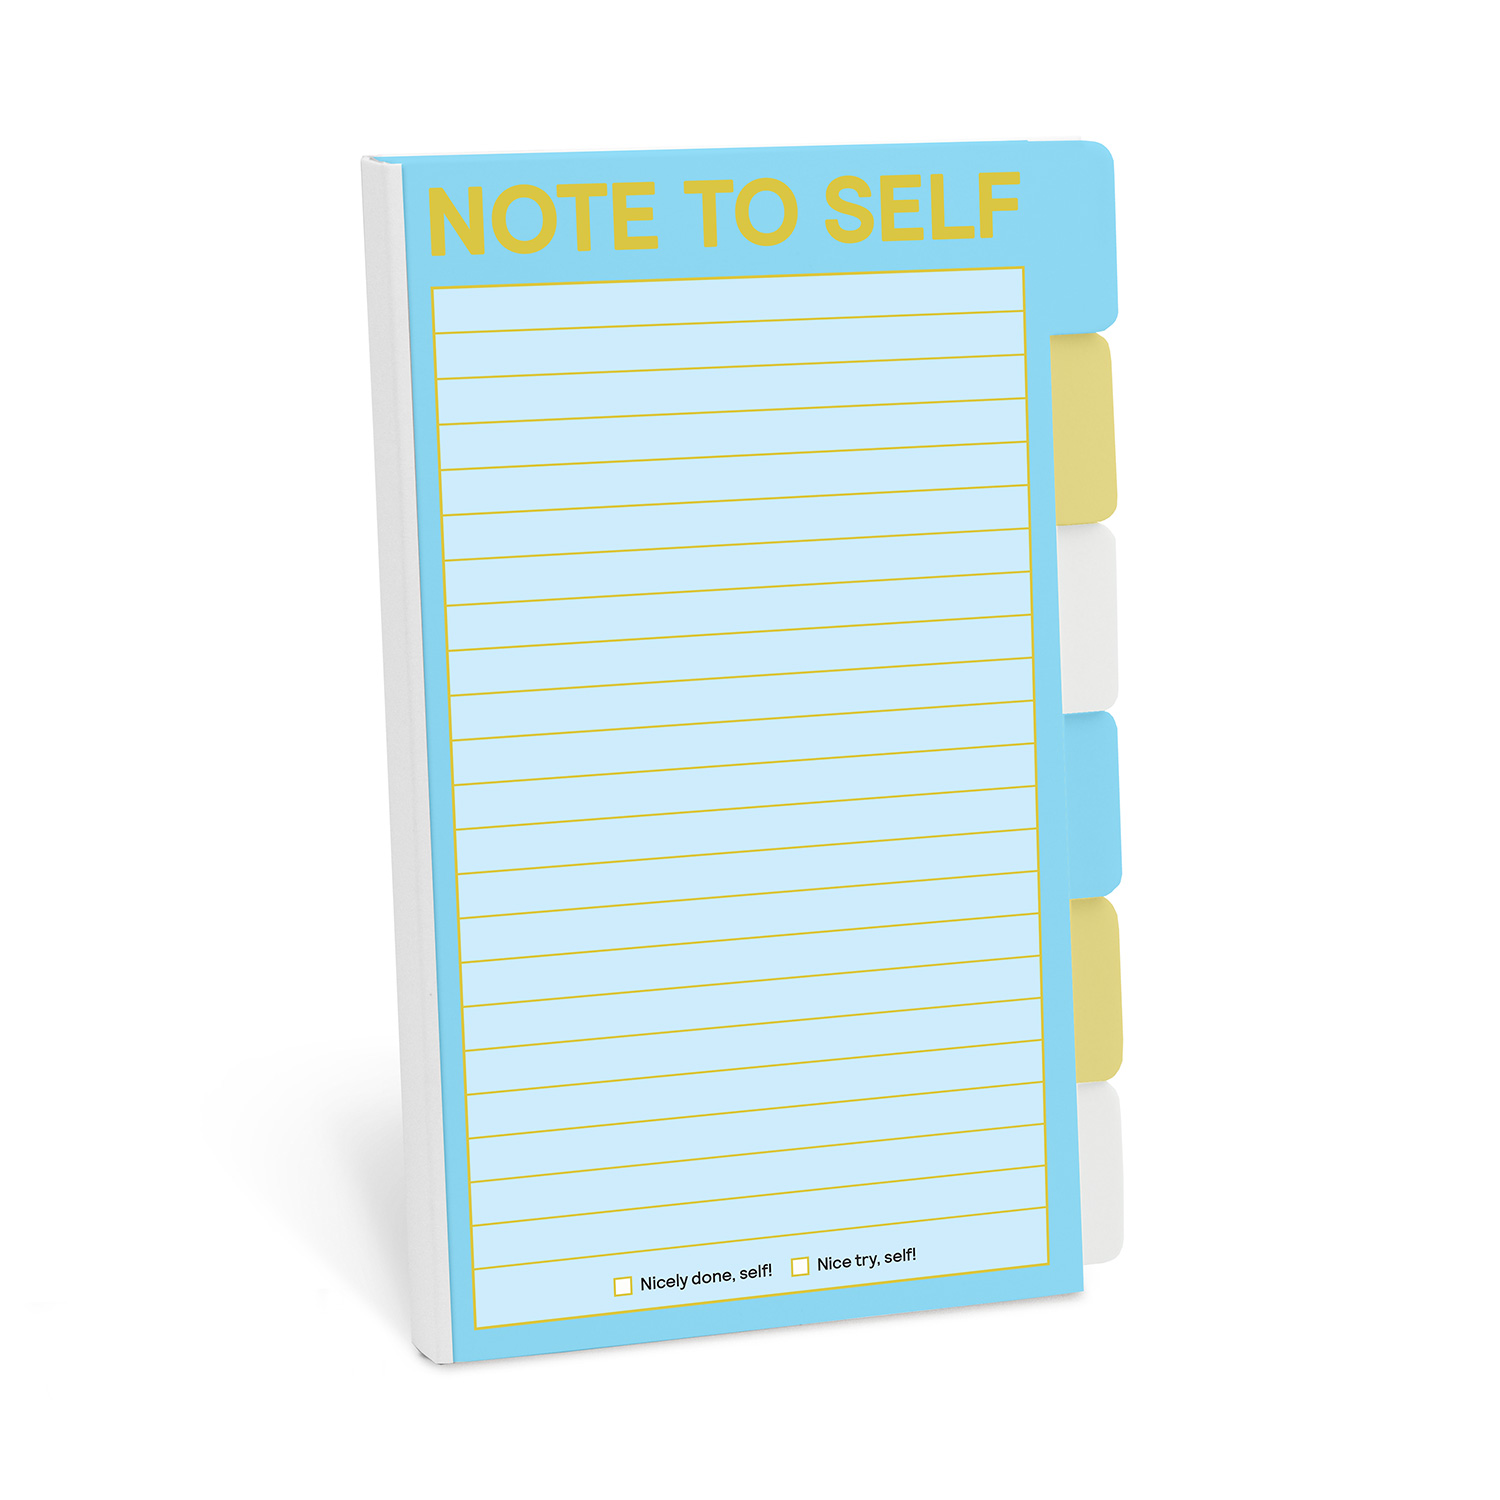 Tabbed Sticky Note Folio: Note to Self